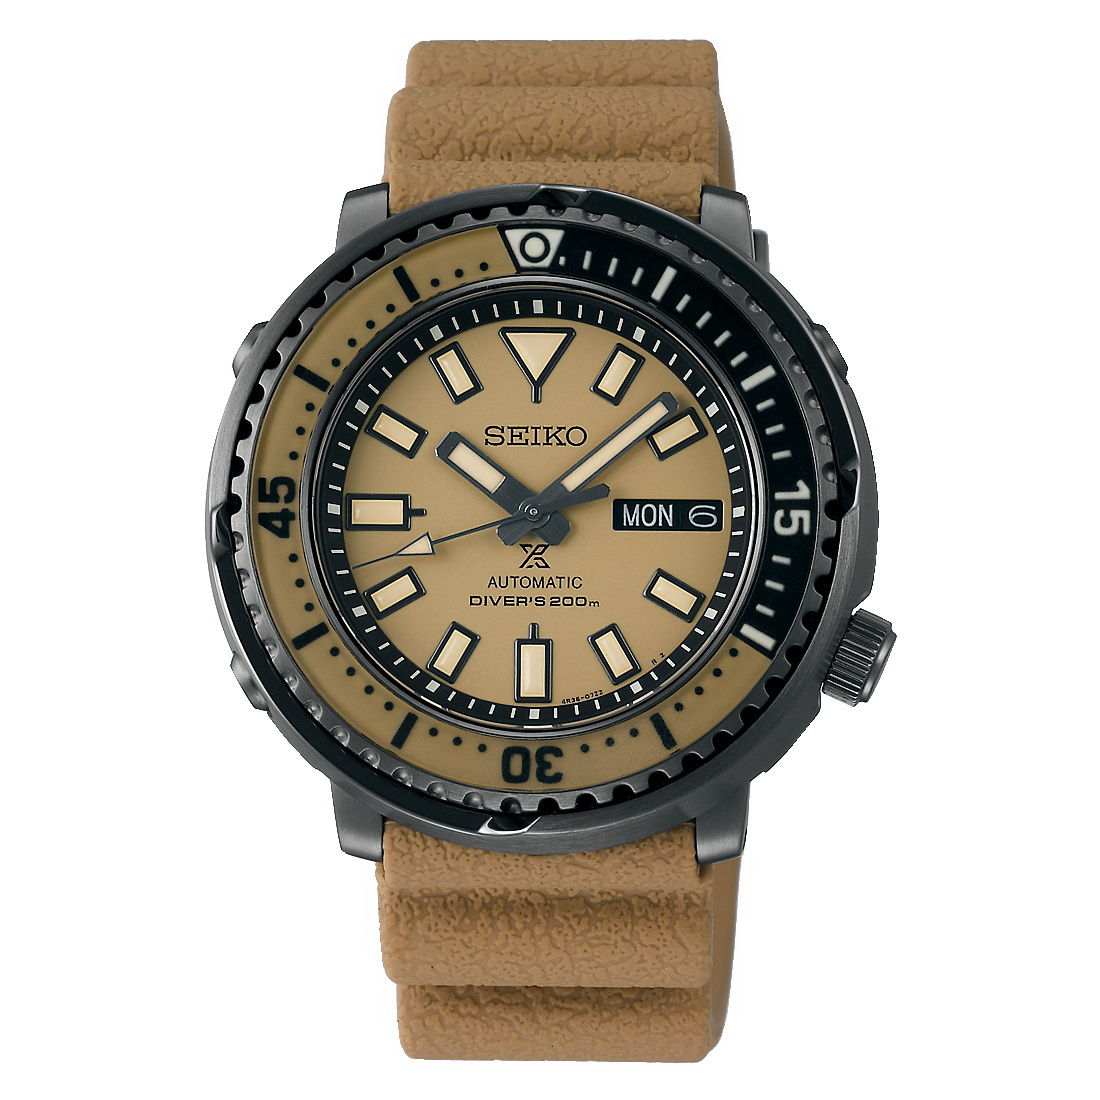 Seiko's new Prospex Urban Safari Capsule Collection SEIKO+Prospex+Diver%27s+URBAN+SAFARI+Capsule+COLLECTION+05